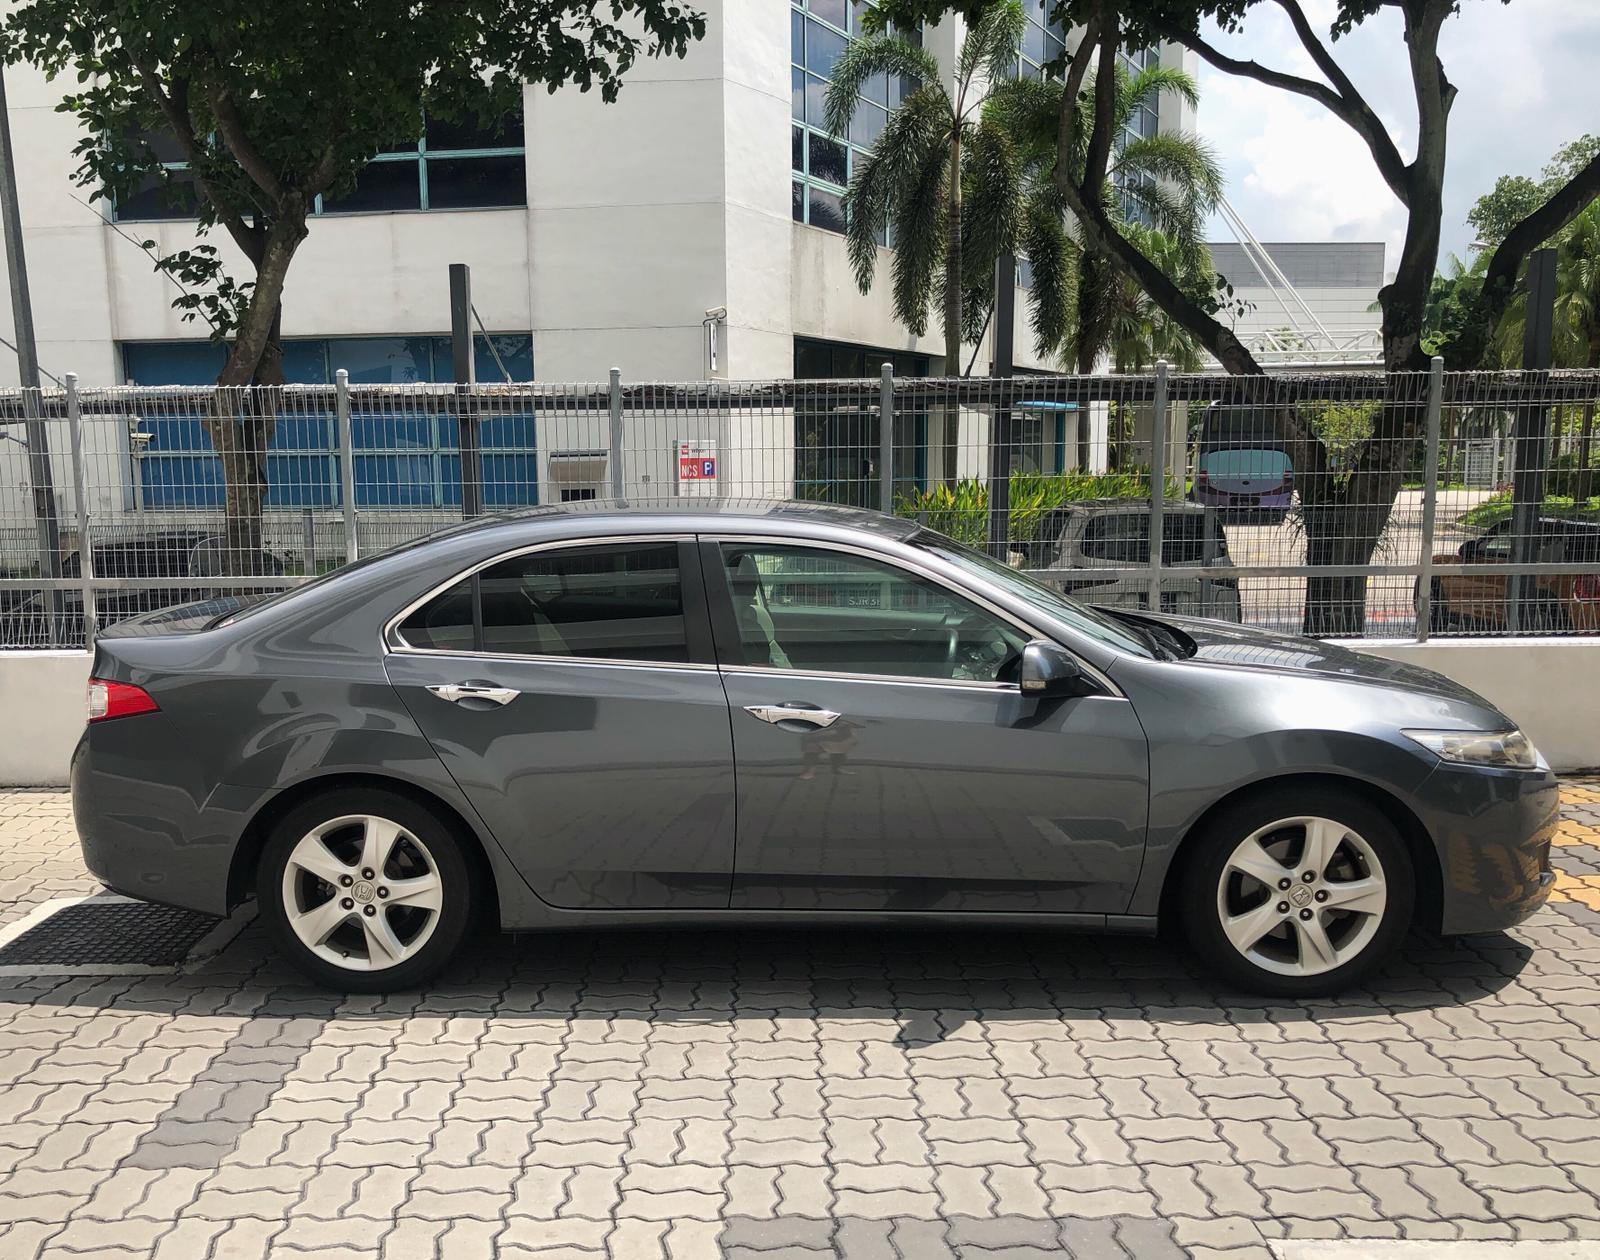 Honda Accord *TOP CONDITION ZERO PROBLEM* $55 MazdaToyota Vios Wish Altis Car Axio Premio Allion Camry Estima Honda Jazz Fit Stream Civic Cars Hyundai Avante $50 perday PHV  For Rent Lease To Own Grab Rental Gojek Or Personal Use Low price and Cheap